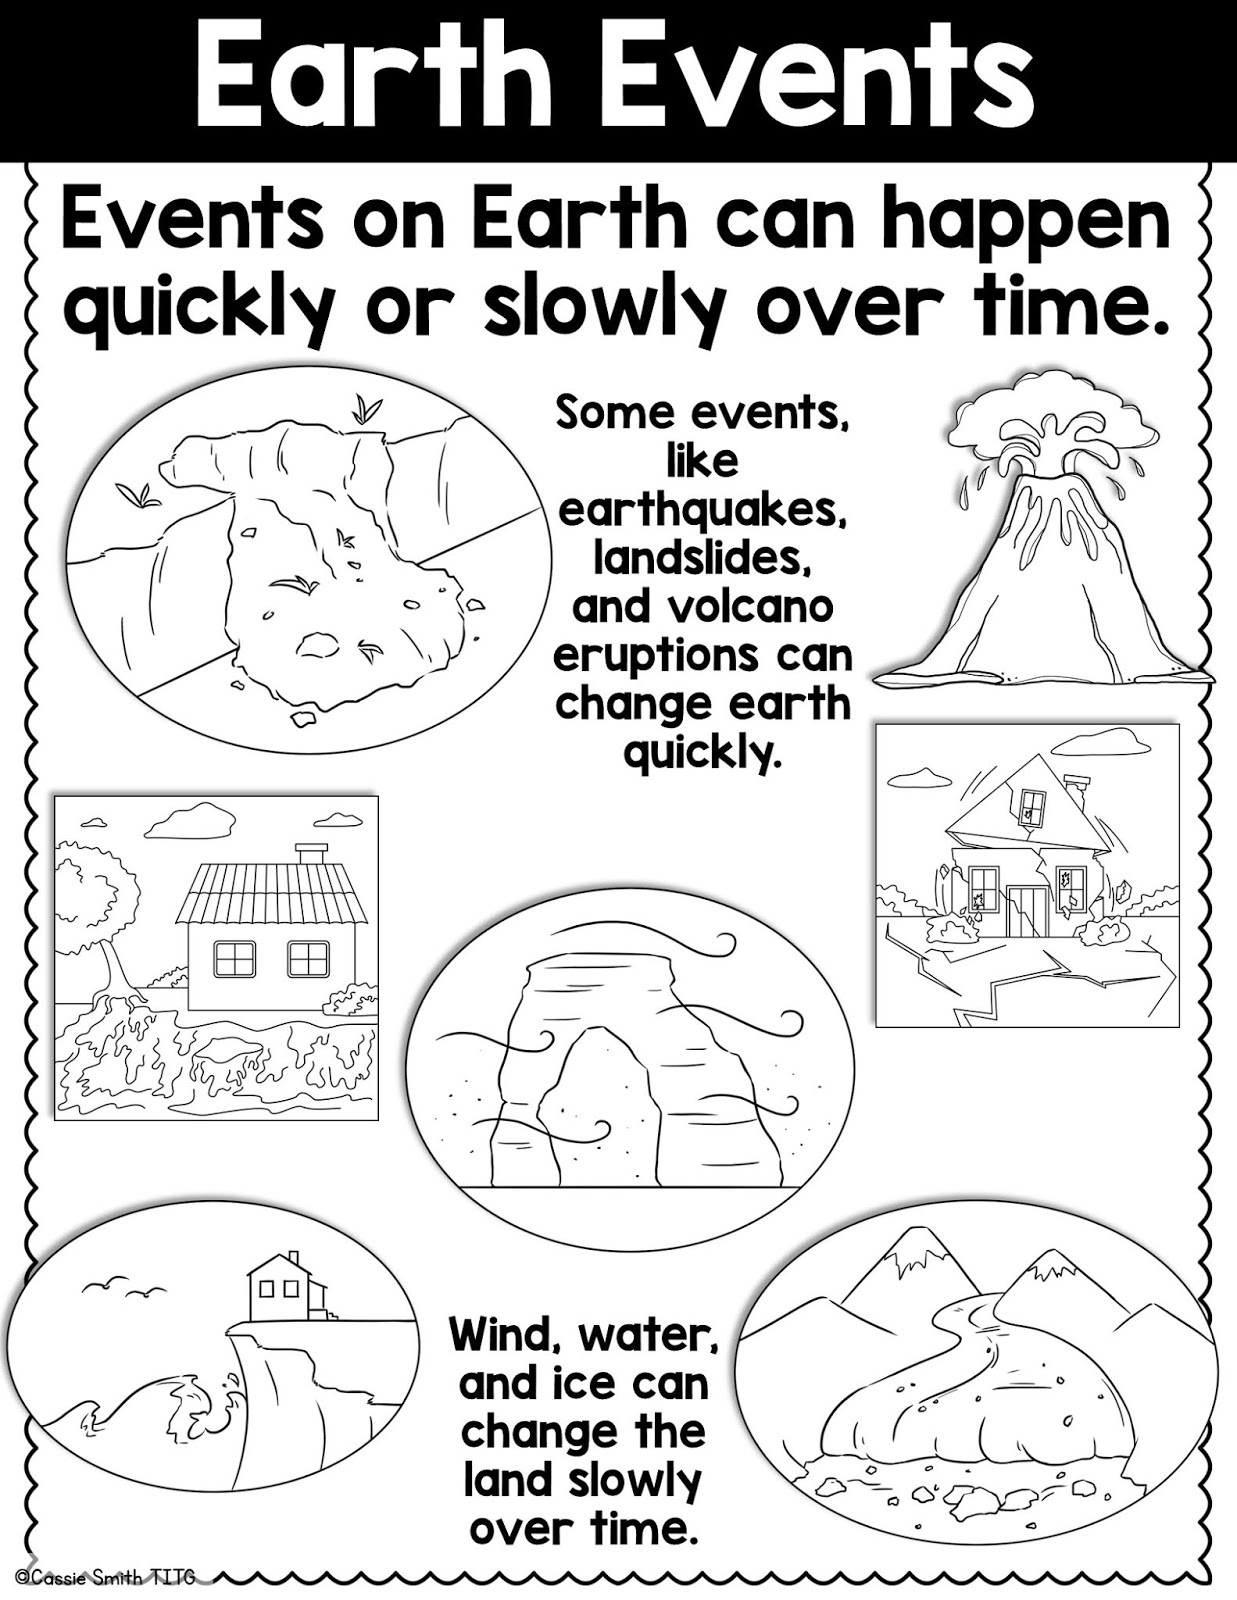 Earth's Systems: Processes that Shape the Earth 2nd Grade